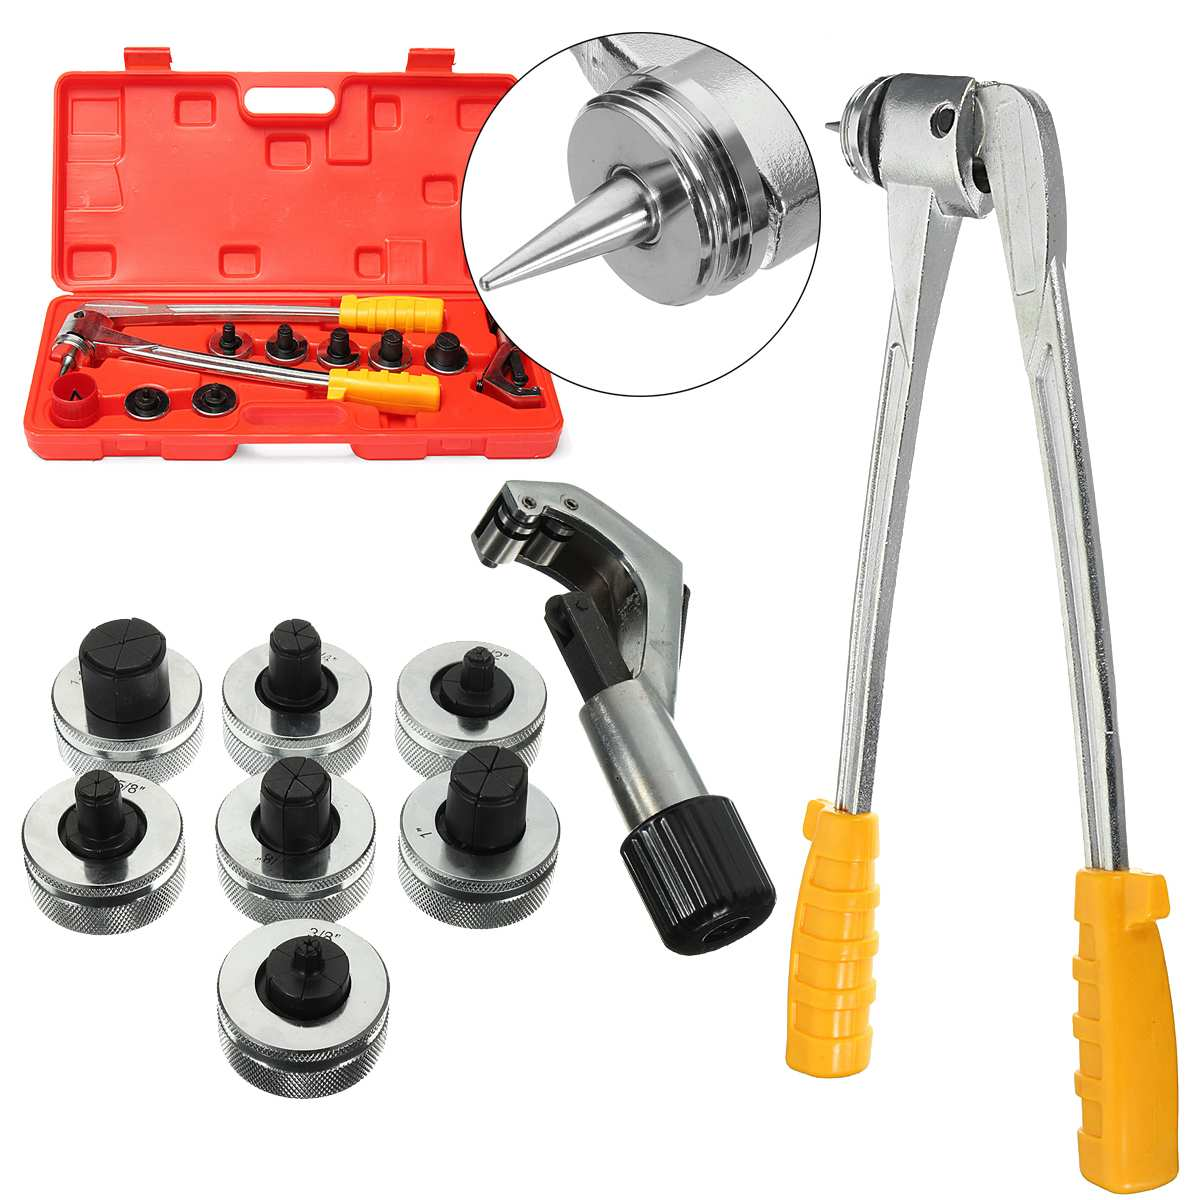 7 Lever Hydraulic Copper Tube Expander Tool Kit Pipe Expander Tube Cutter Plumbing Air Conditioner7 Lever Hydraulic Copper Tube Expander Tool Kit Pipe Expander Tube Cutter Plumbing Air Conditioner